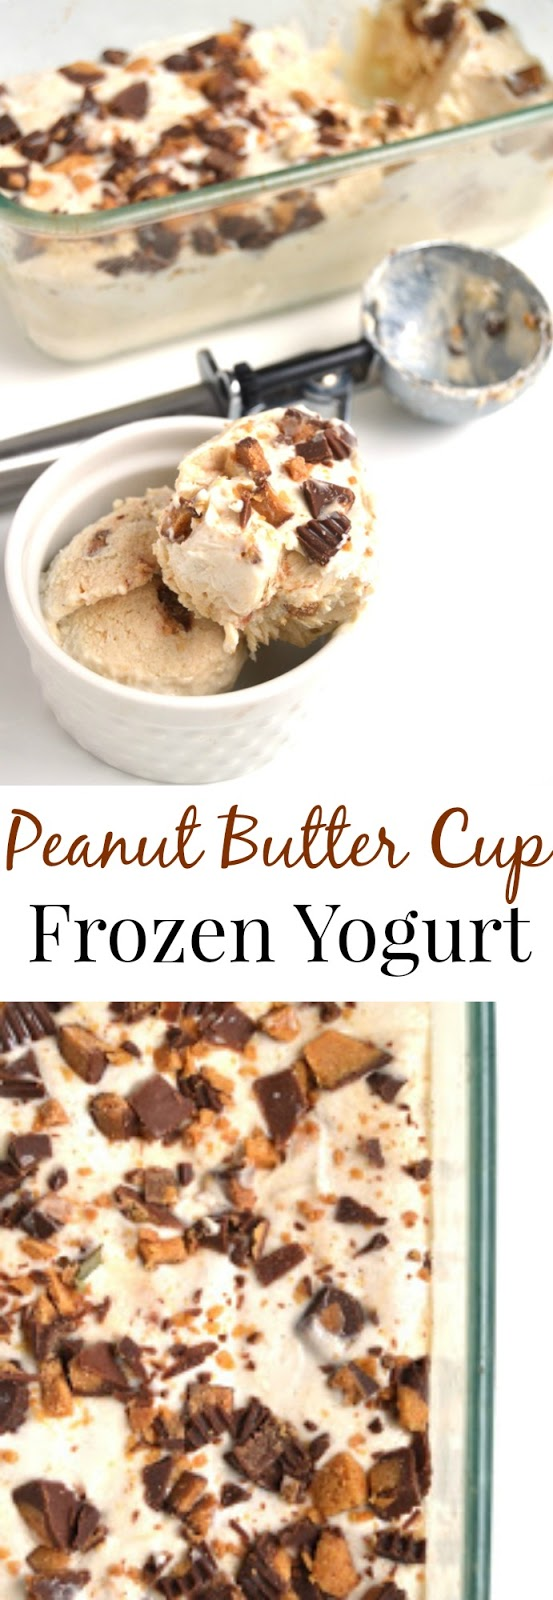 Peanut Butter Cup Frozen Yogurt is a healthier treat with only 3 ingredients, is packed full of protein with Greek yogurt and tastes like an indulgent dessert with chunks of creamy peanut butter cups and the creamiest ice cream base! www.nutritionistreviews.com